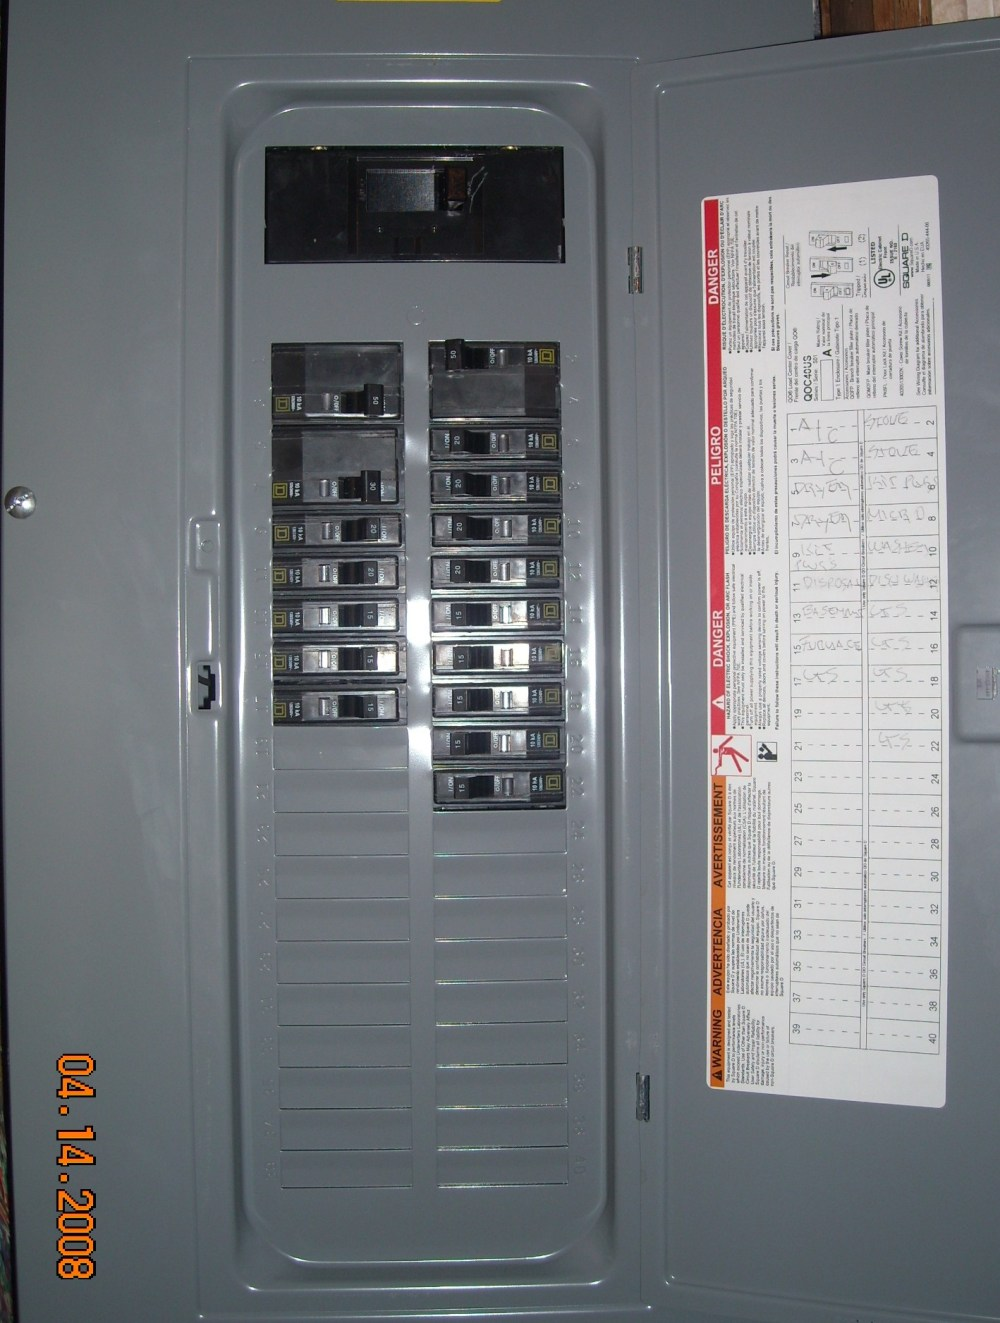 medium resolution of residential fuse box wiring diagram review mix fuse box in house wiring diagram mega residential fuse